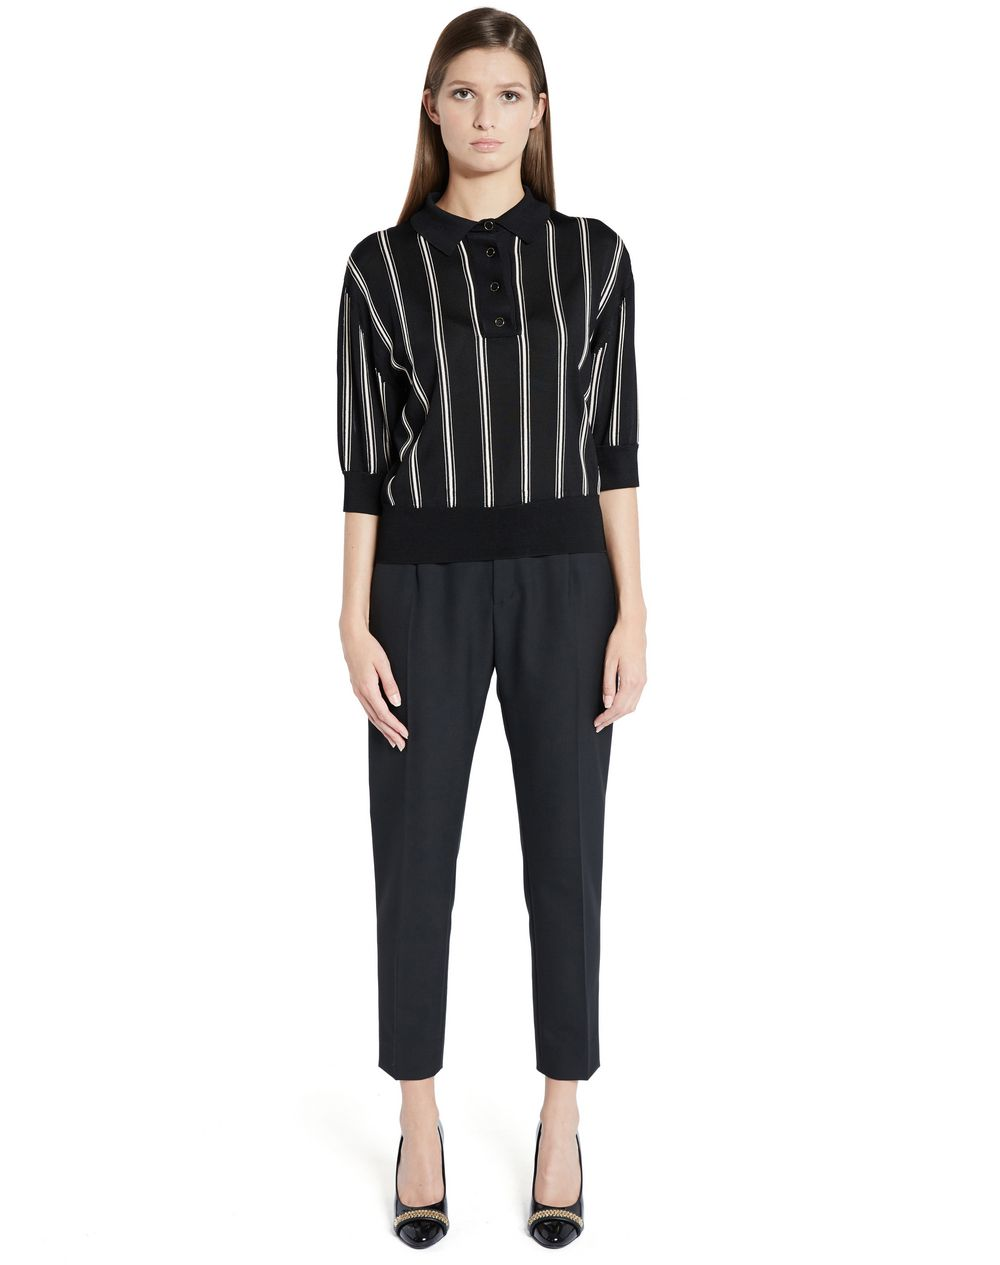 INTARSIA VISCOSE KNIT TOP - Lanvin